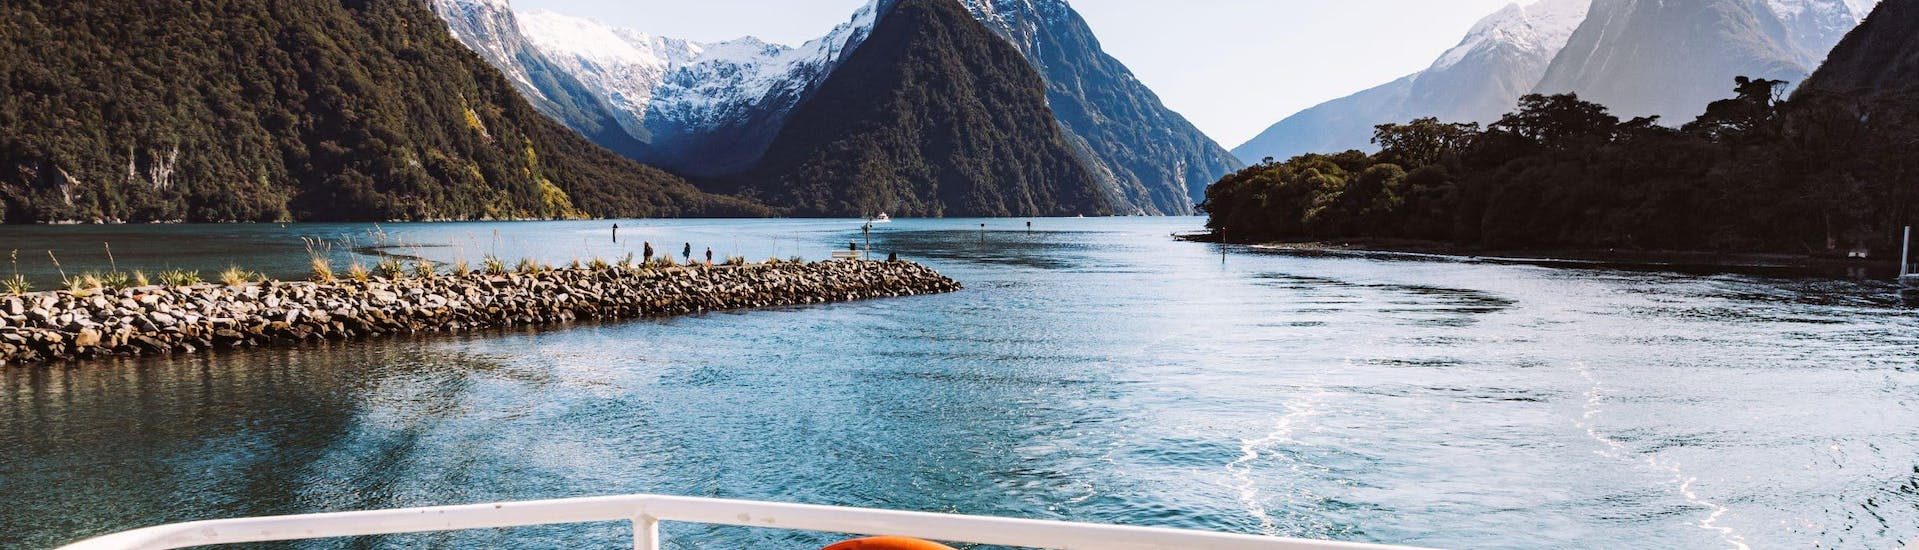 Durign the Flying Tour with Milford Sound Cruise - From Queenstown, a catamaran from Jucy Cruise is leaving the stunning mountainous landscape behind.